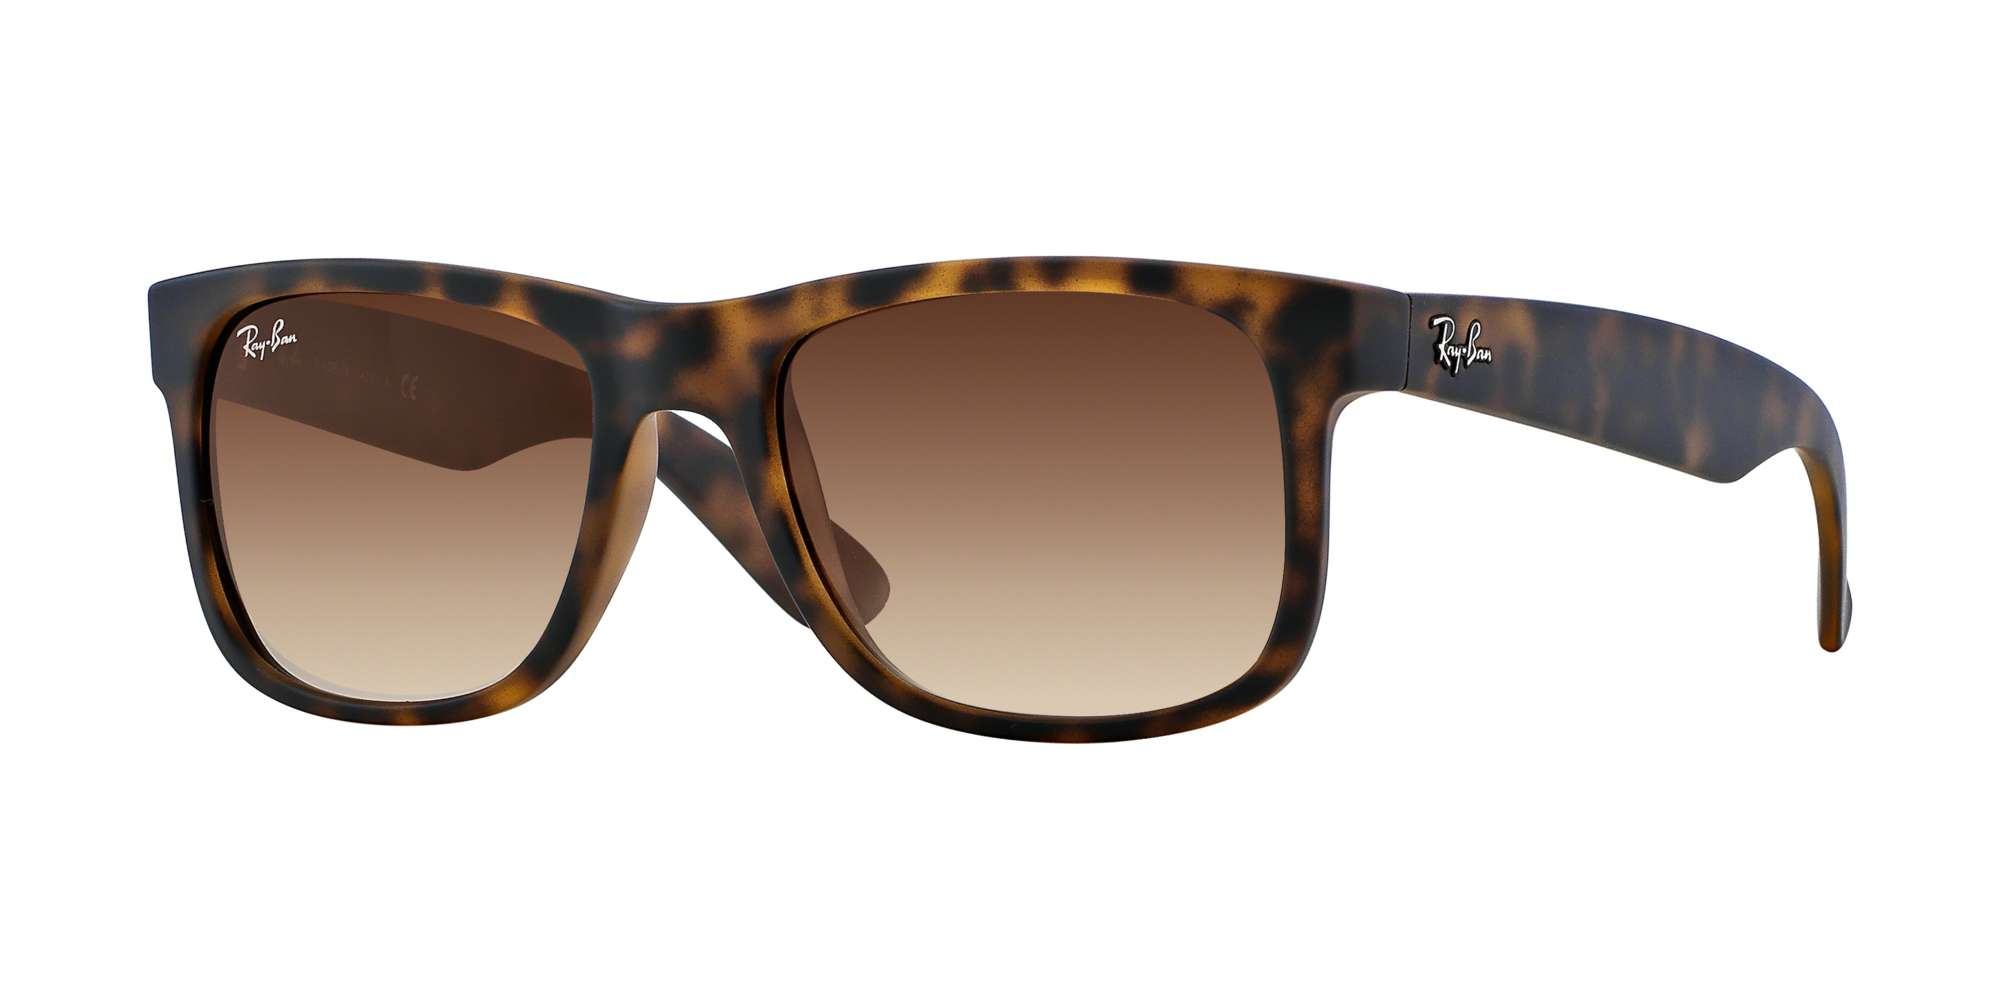 RUBBER LIGHT HAVANA / BROWN GRADIENT lenses